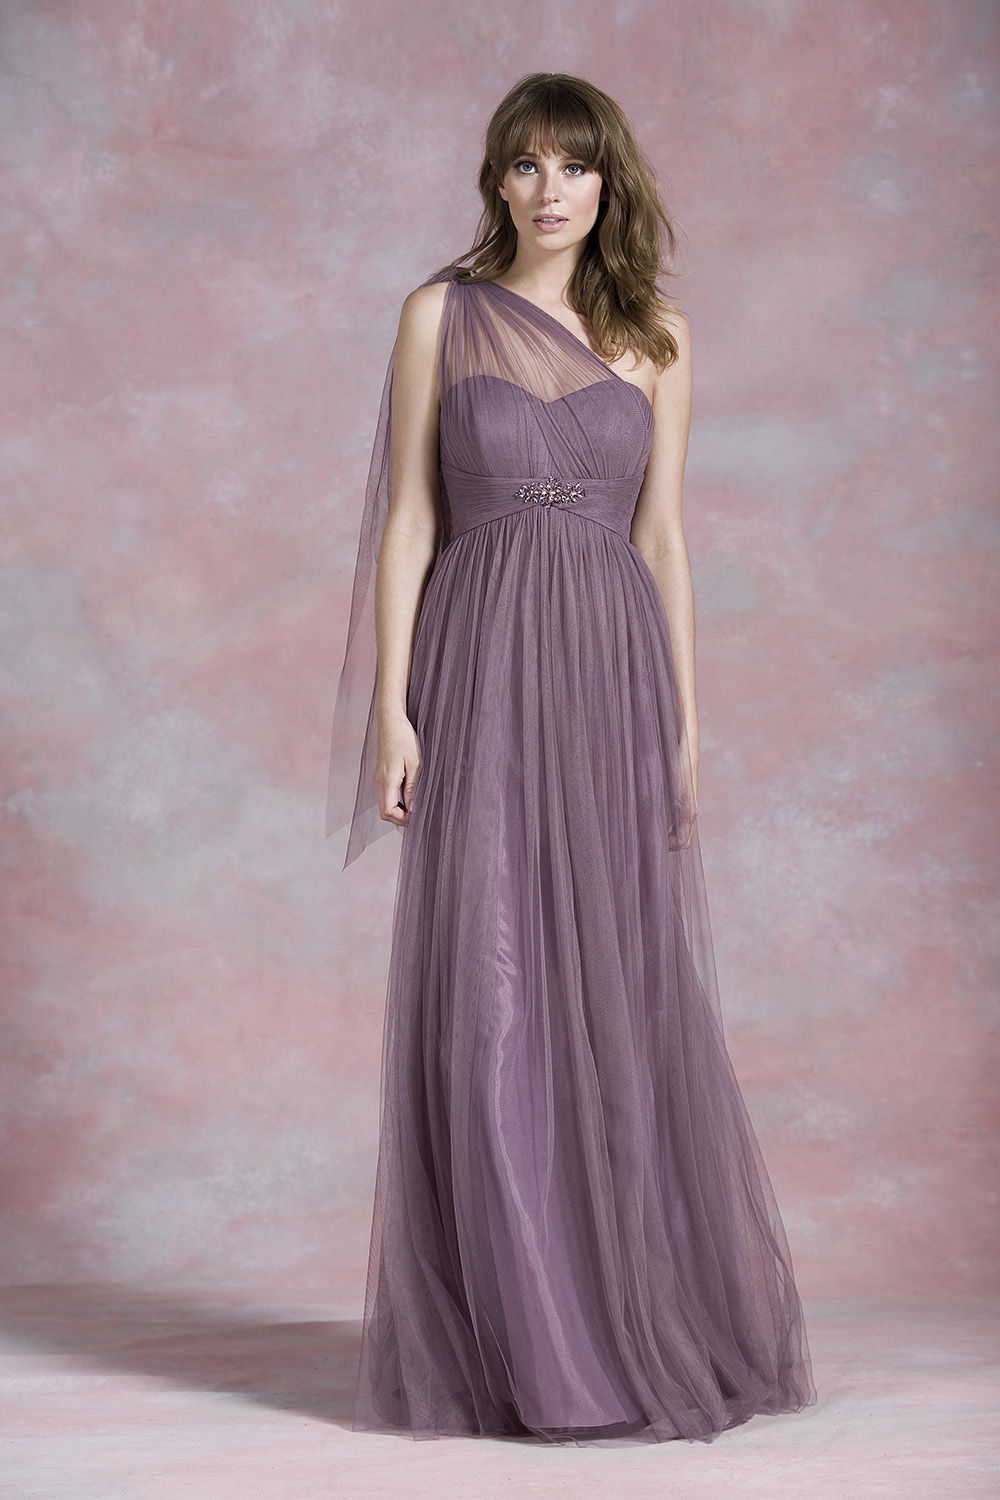 b8b4d5f332d5 Convertible Dresses Empire Tulle Long Pregnant Bridesmaid Dresses Many  Style Multiway Elegant Girl Wedding Party Dresses RBD14-in Bridesmaid  Dresses from ...